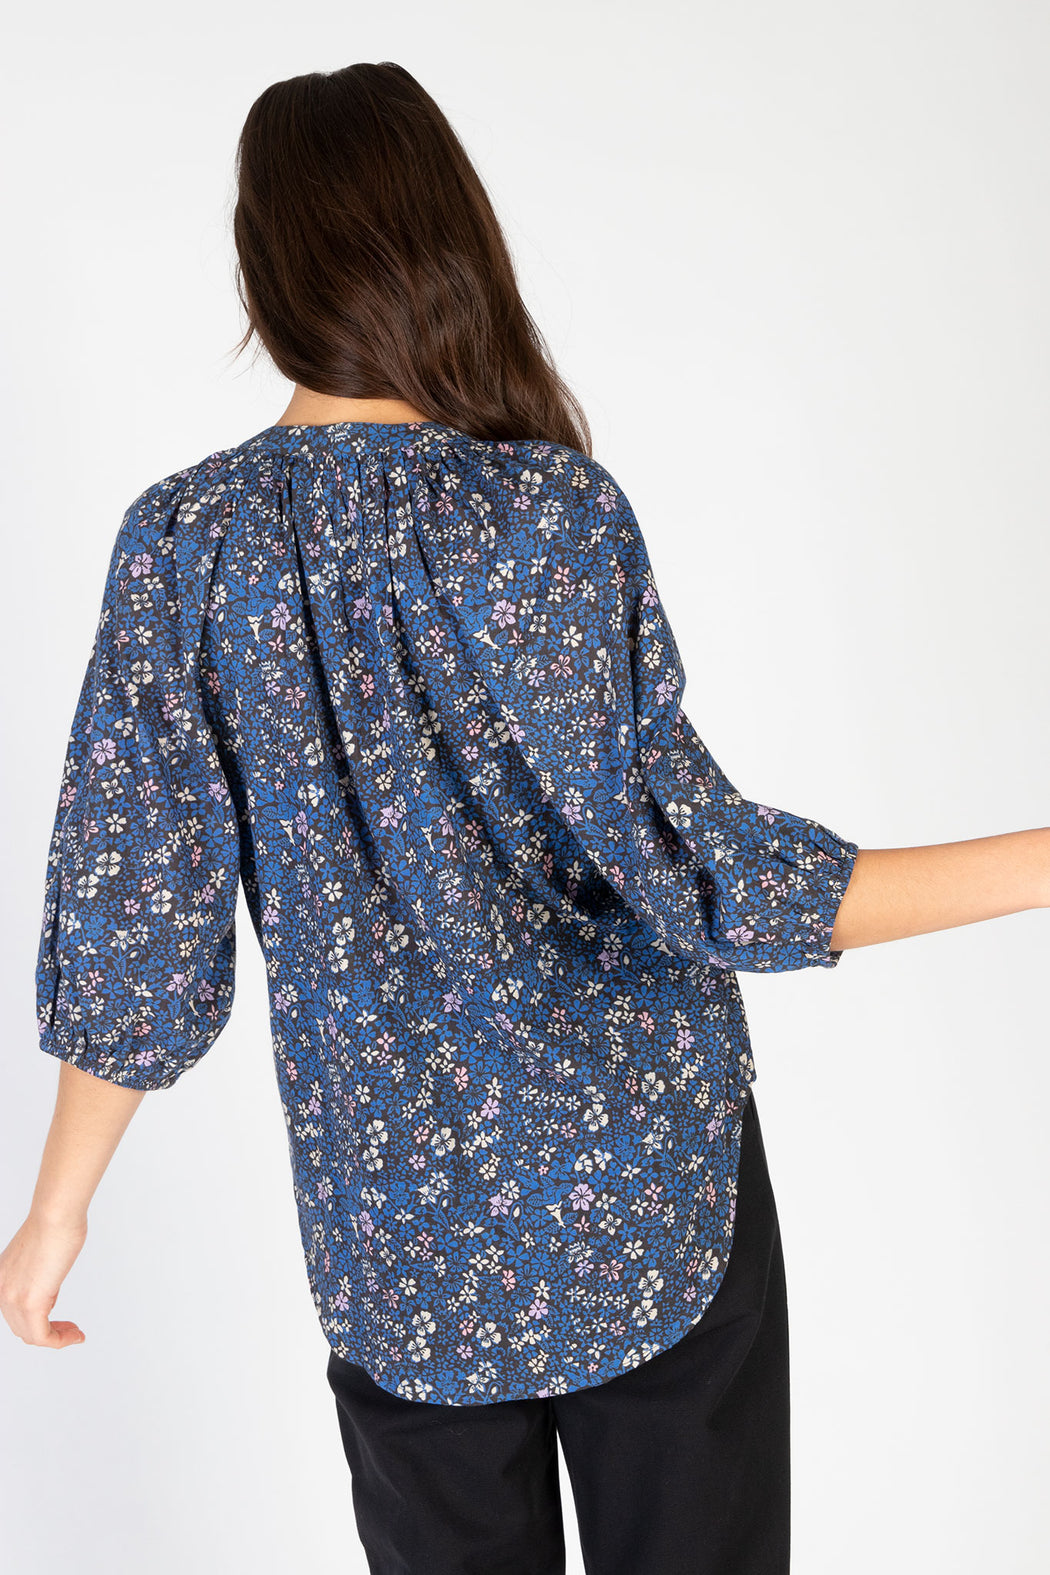 Apiece-Apart-Mitte-Top-Royal-Floral-Navy